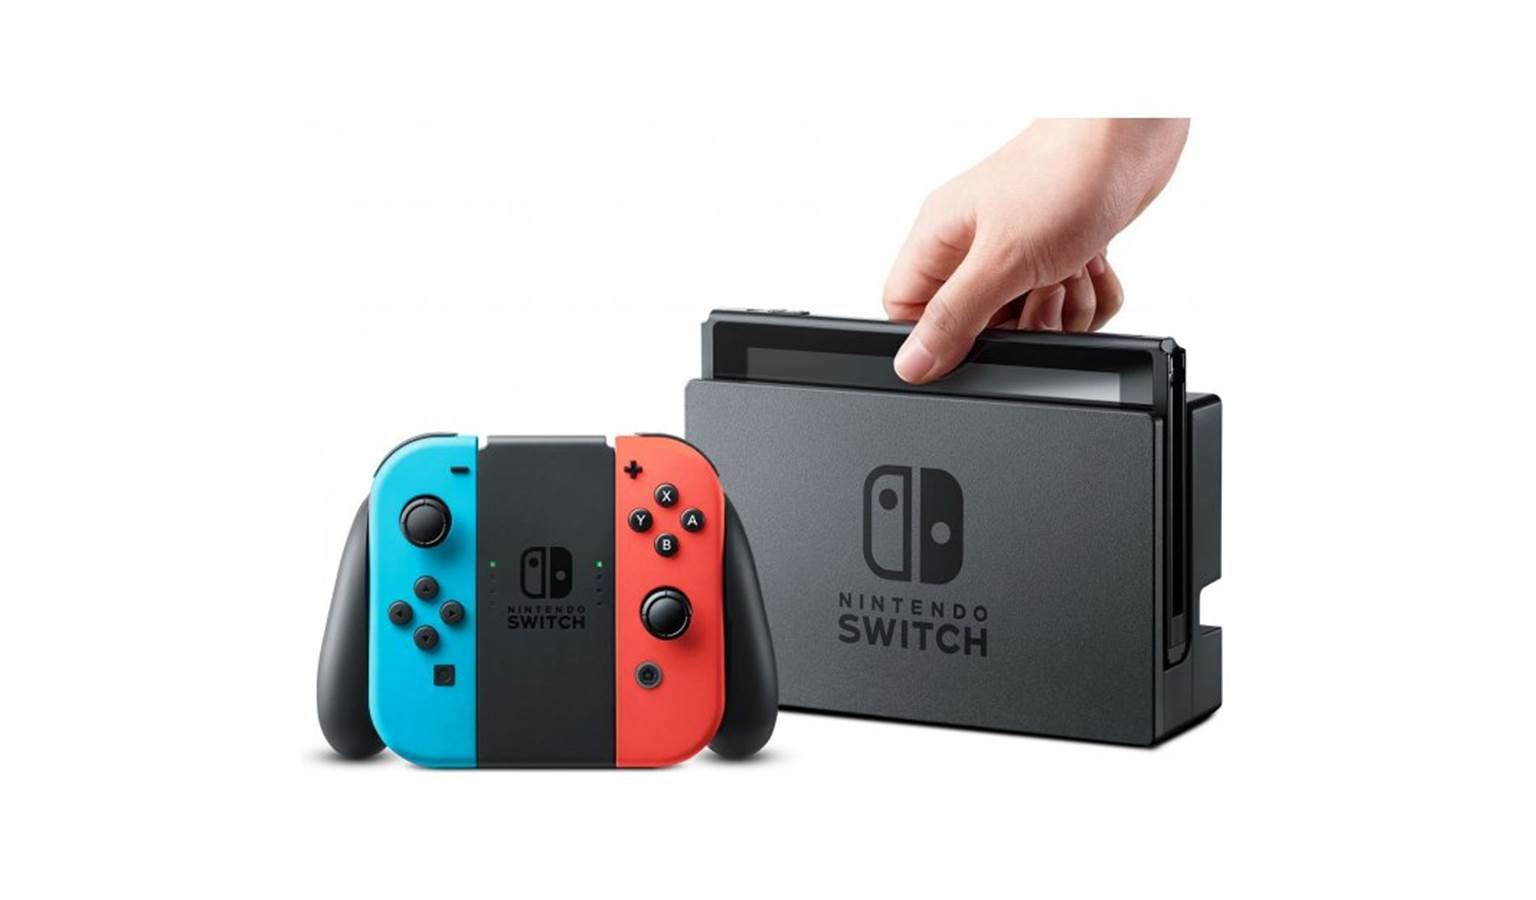 nintendo switch 15 million